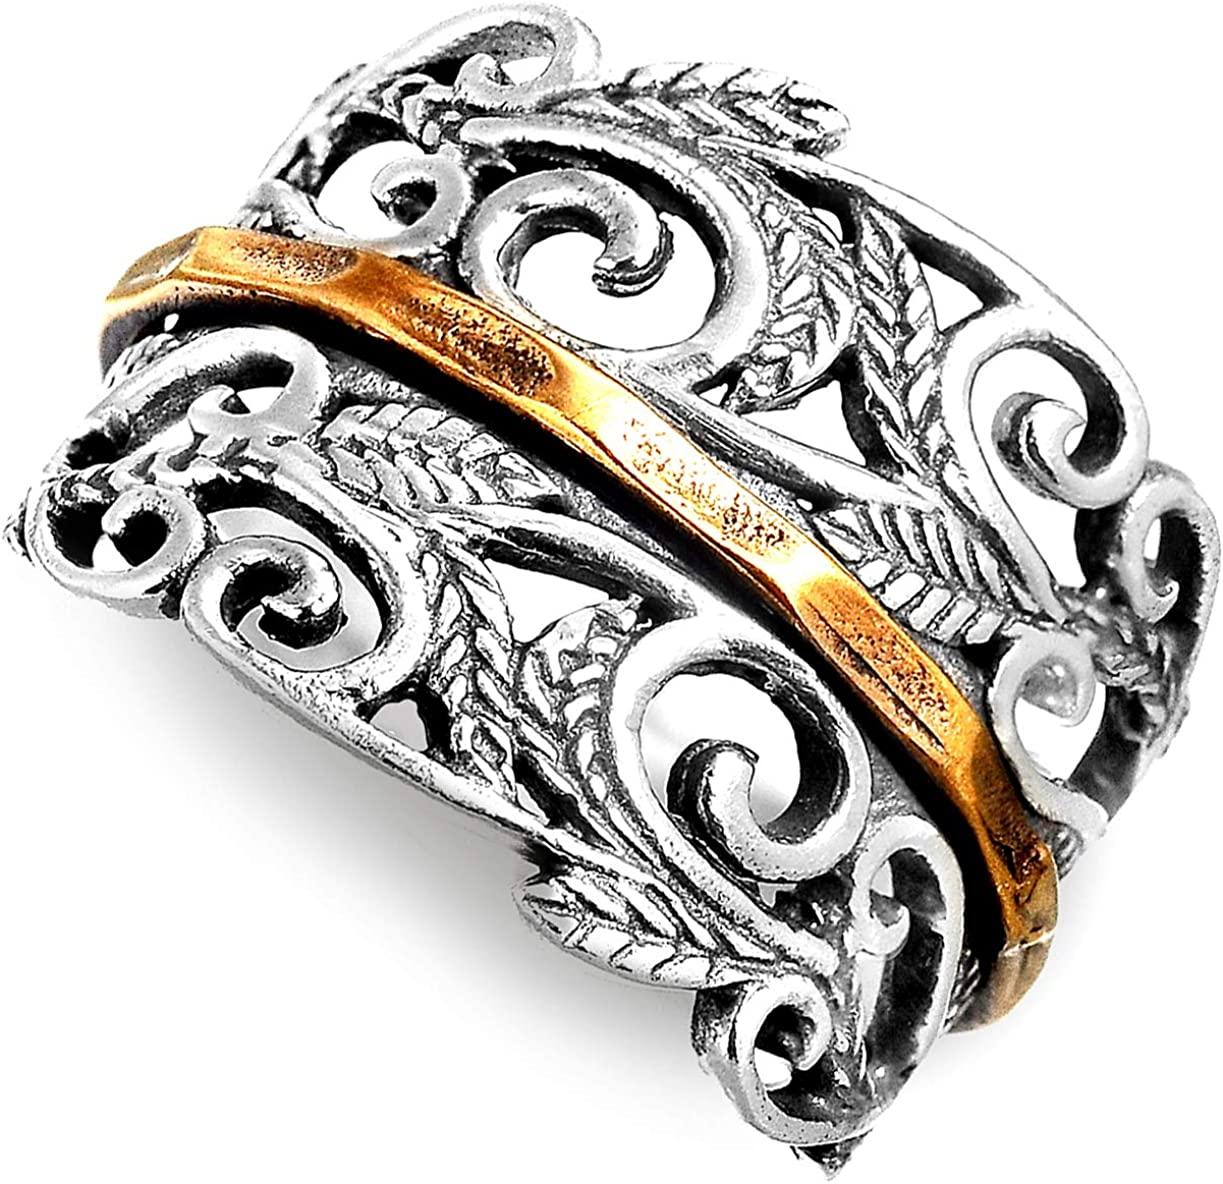 Boho-Magic 925 Sterling Silver Spinner Ring with Brass Spinning Ring for Women | Nature Leaves Fidget Meditation Anxiety Wide Band | Statement Chunky Jewelry Size 6-10